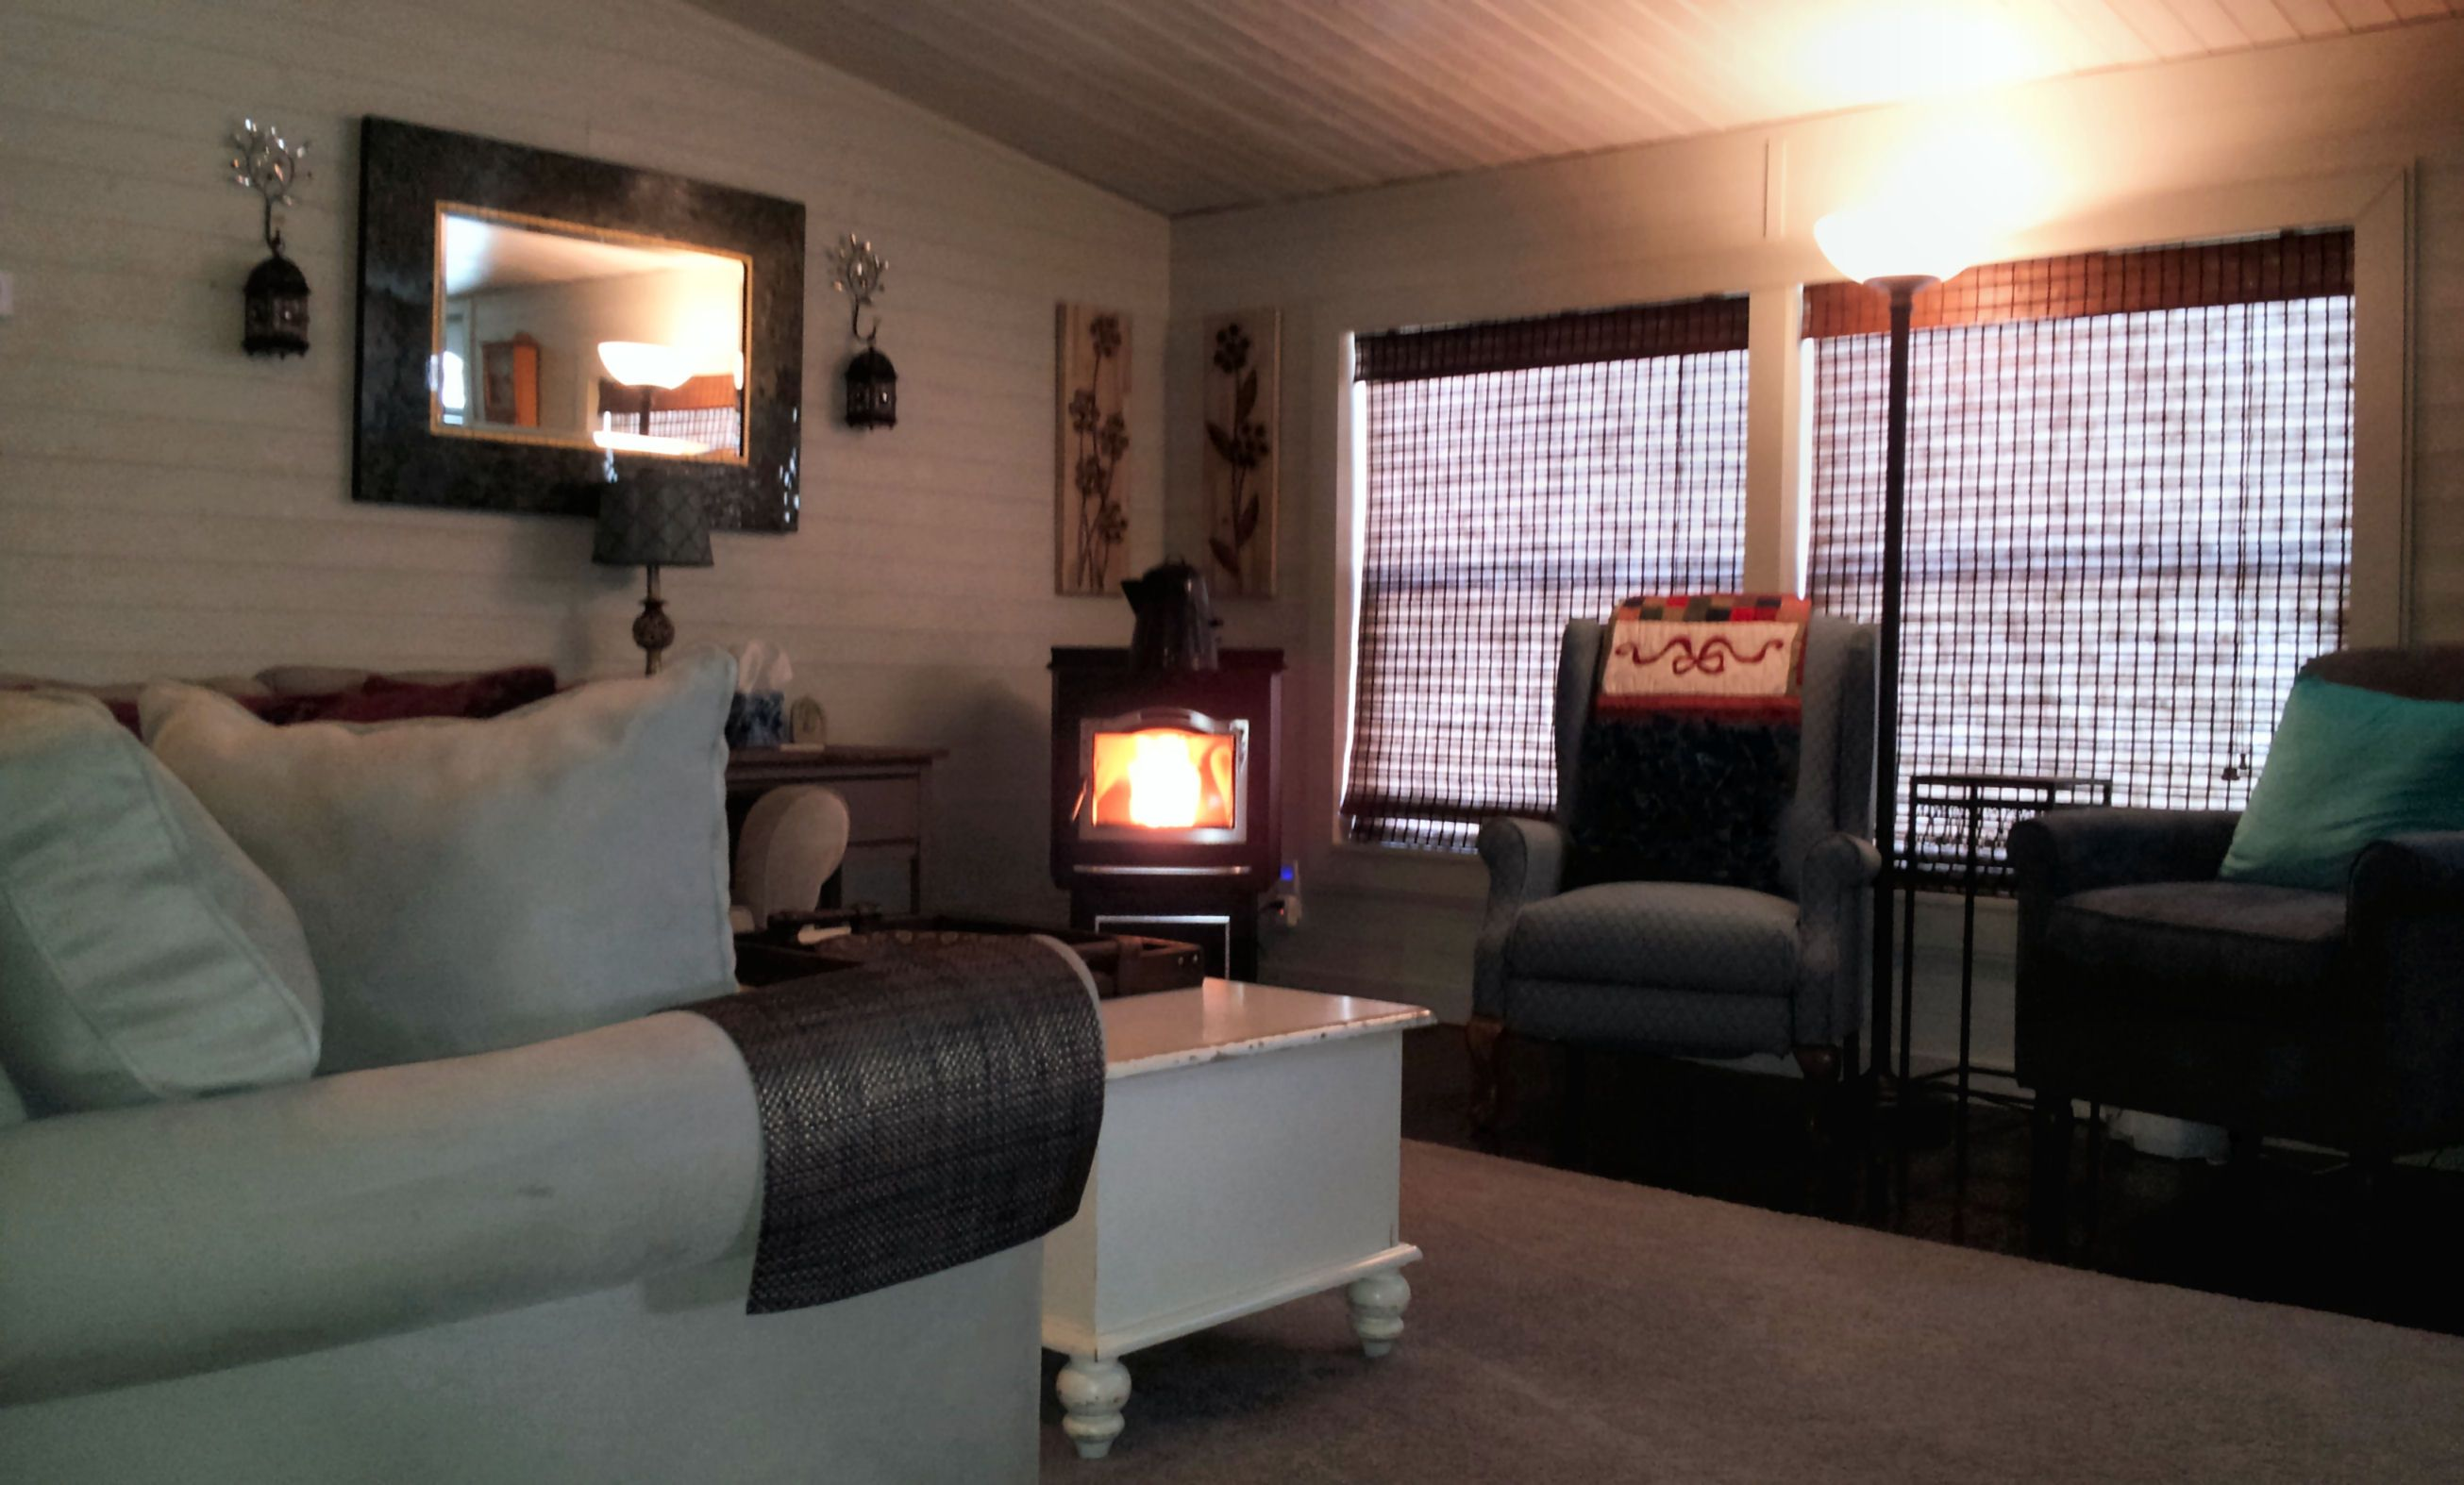 Mobile Home Makeover View Of Front With Lit Harman Pellet Stove Remodel Bedroom Mobile Home Living Room Remodeling